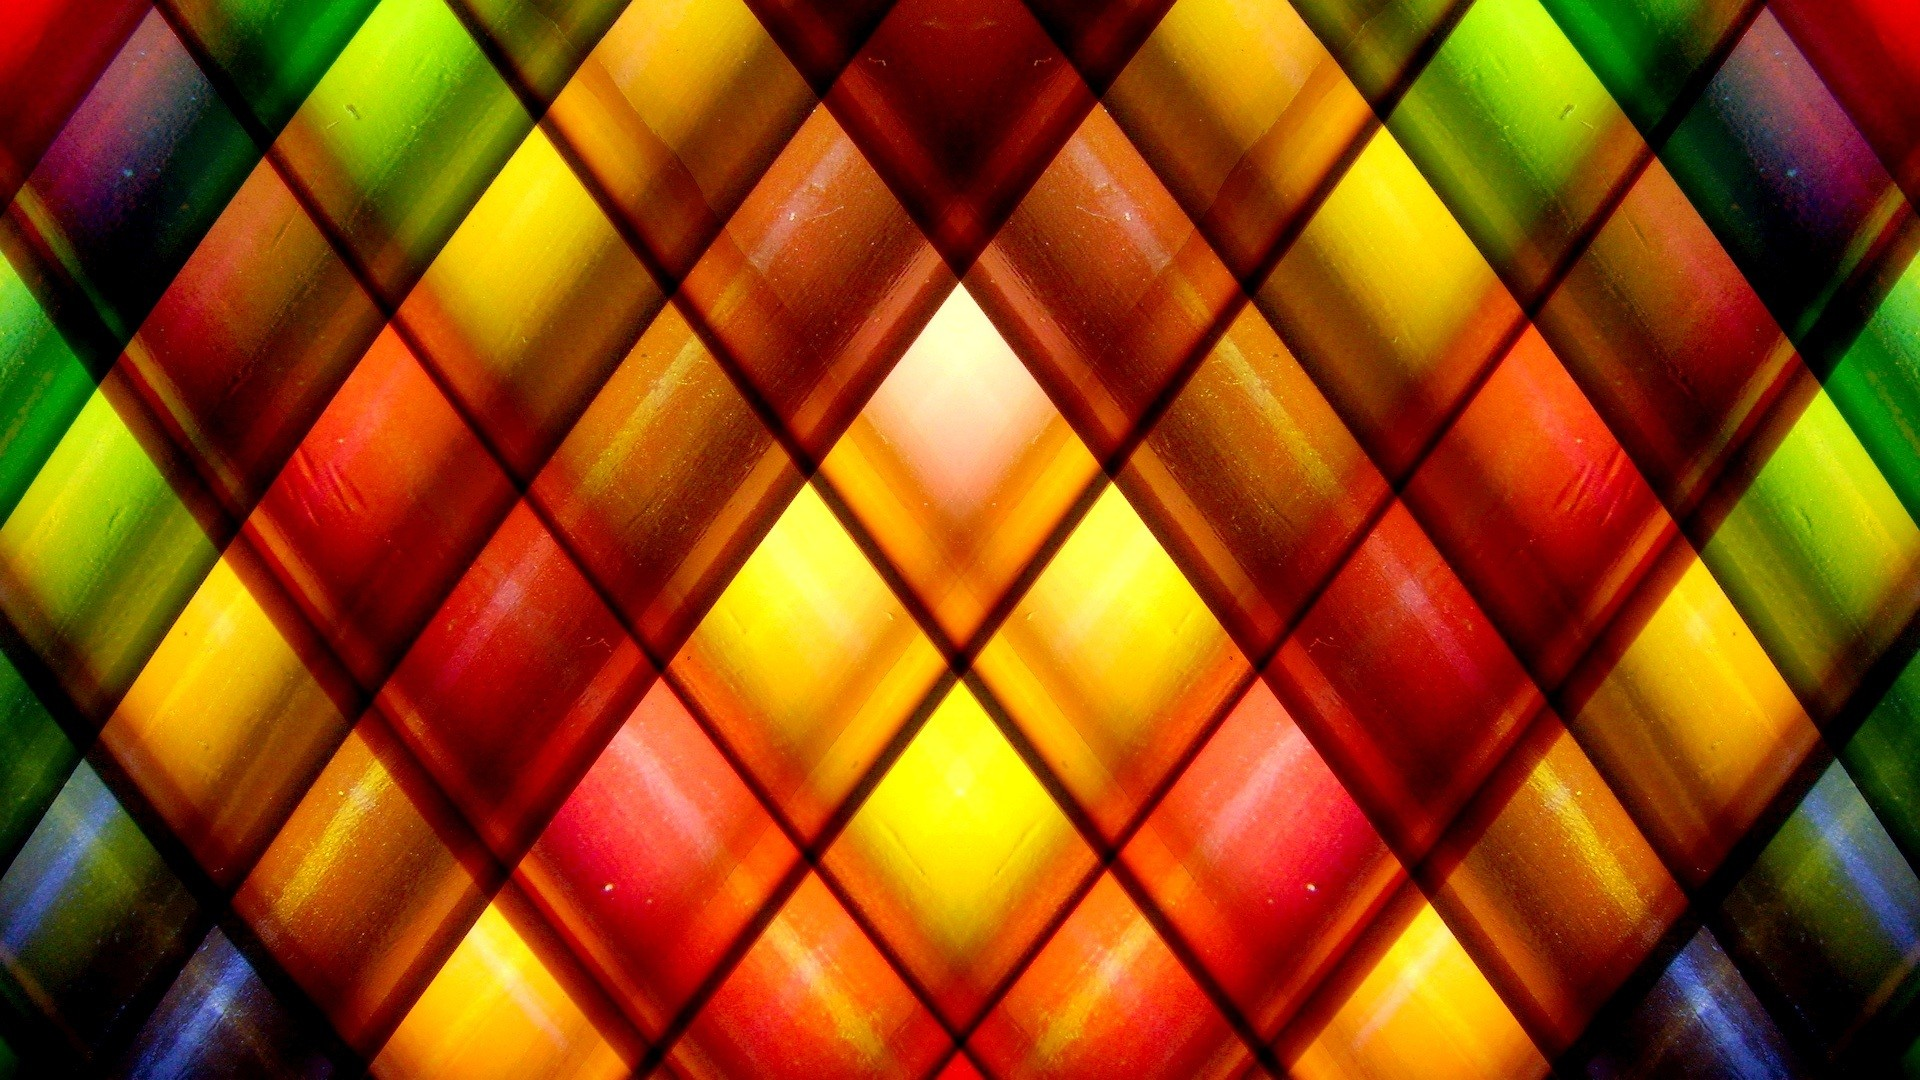 light texture window glass pattern line green red color yellow toy circle  colors design symmetry wallpaper